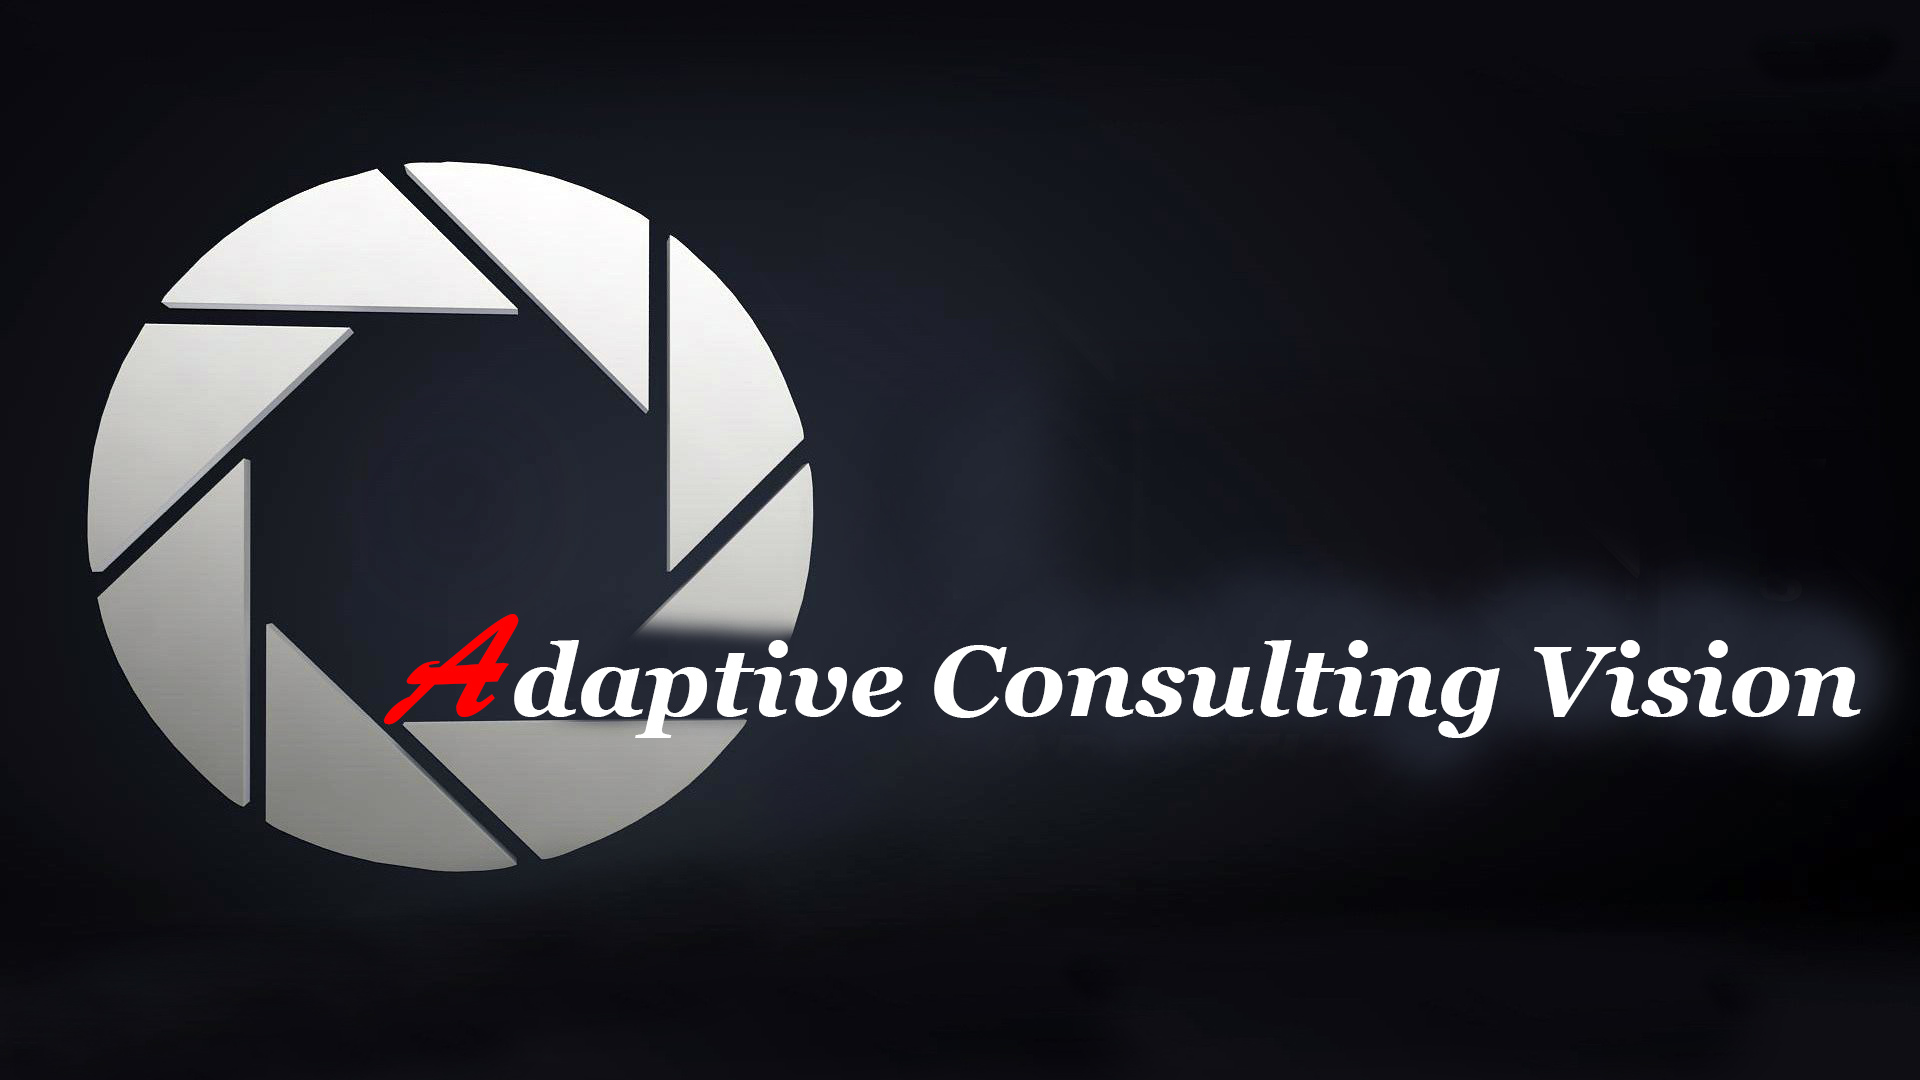 Logo creat special pentru Adaptive Consulting Vision StartUp Nation Program.